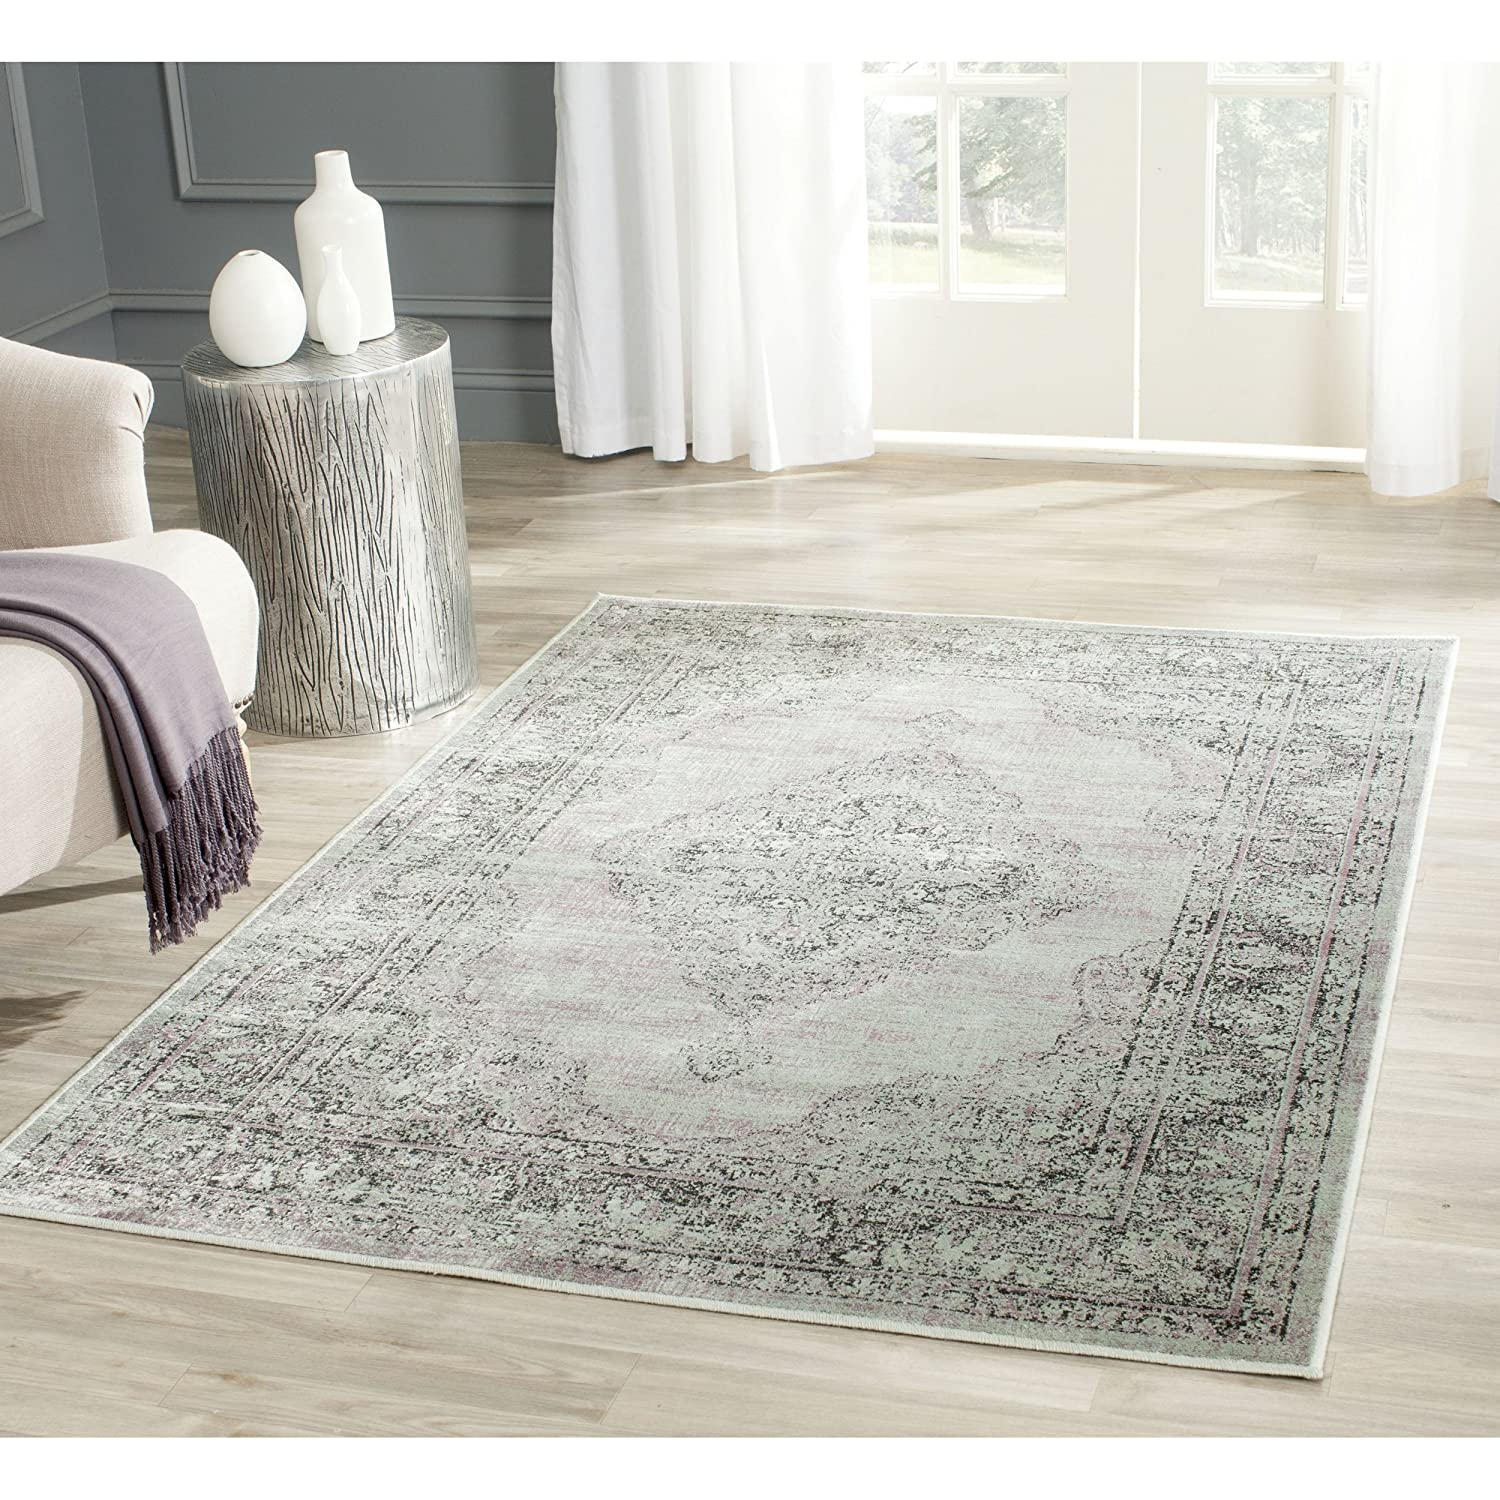 Safavieh Tabriz Floral Collection TF101A Hand Knotted Ivory and Red Wool Area Rug, 12-Feet by 18-Feet TF101A-1218